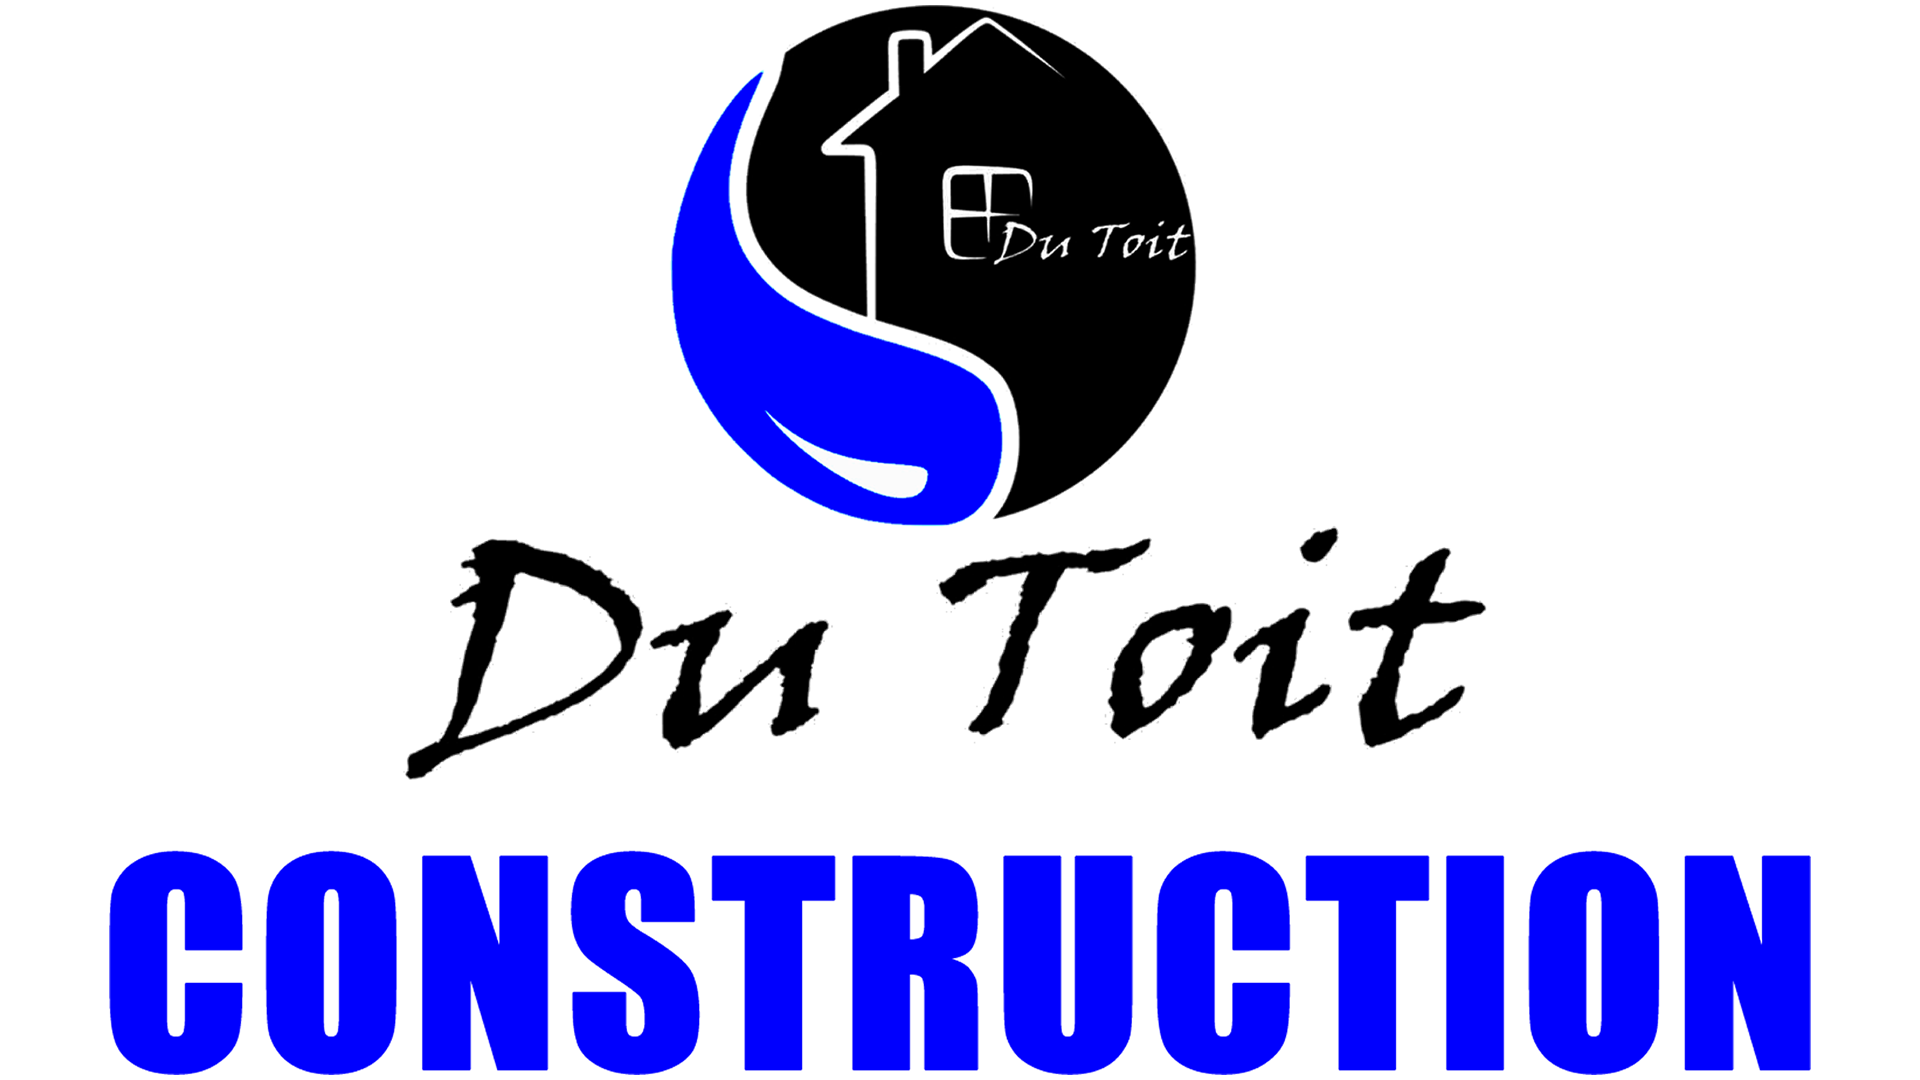 Du Toit Construction in George & Mossel Bay. Western Cape Home NHBCR registered Builder, House Repairs, Renovations, Maintenance, Property Development Building & Construction Services